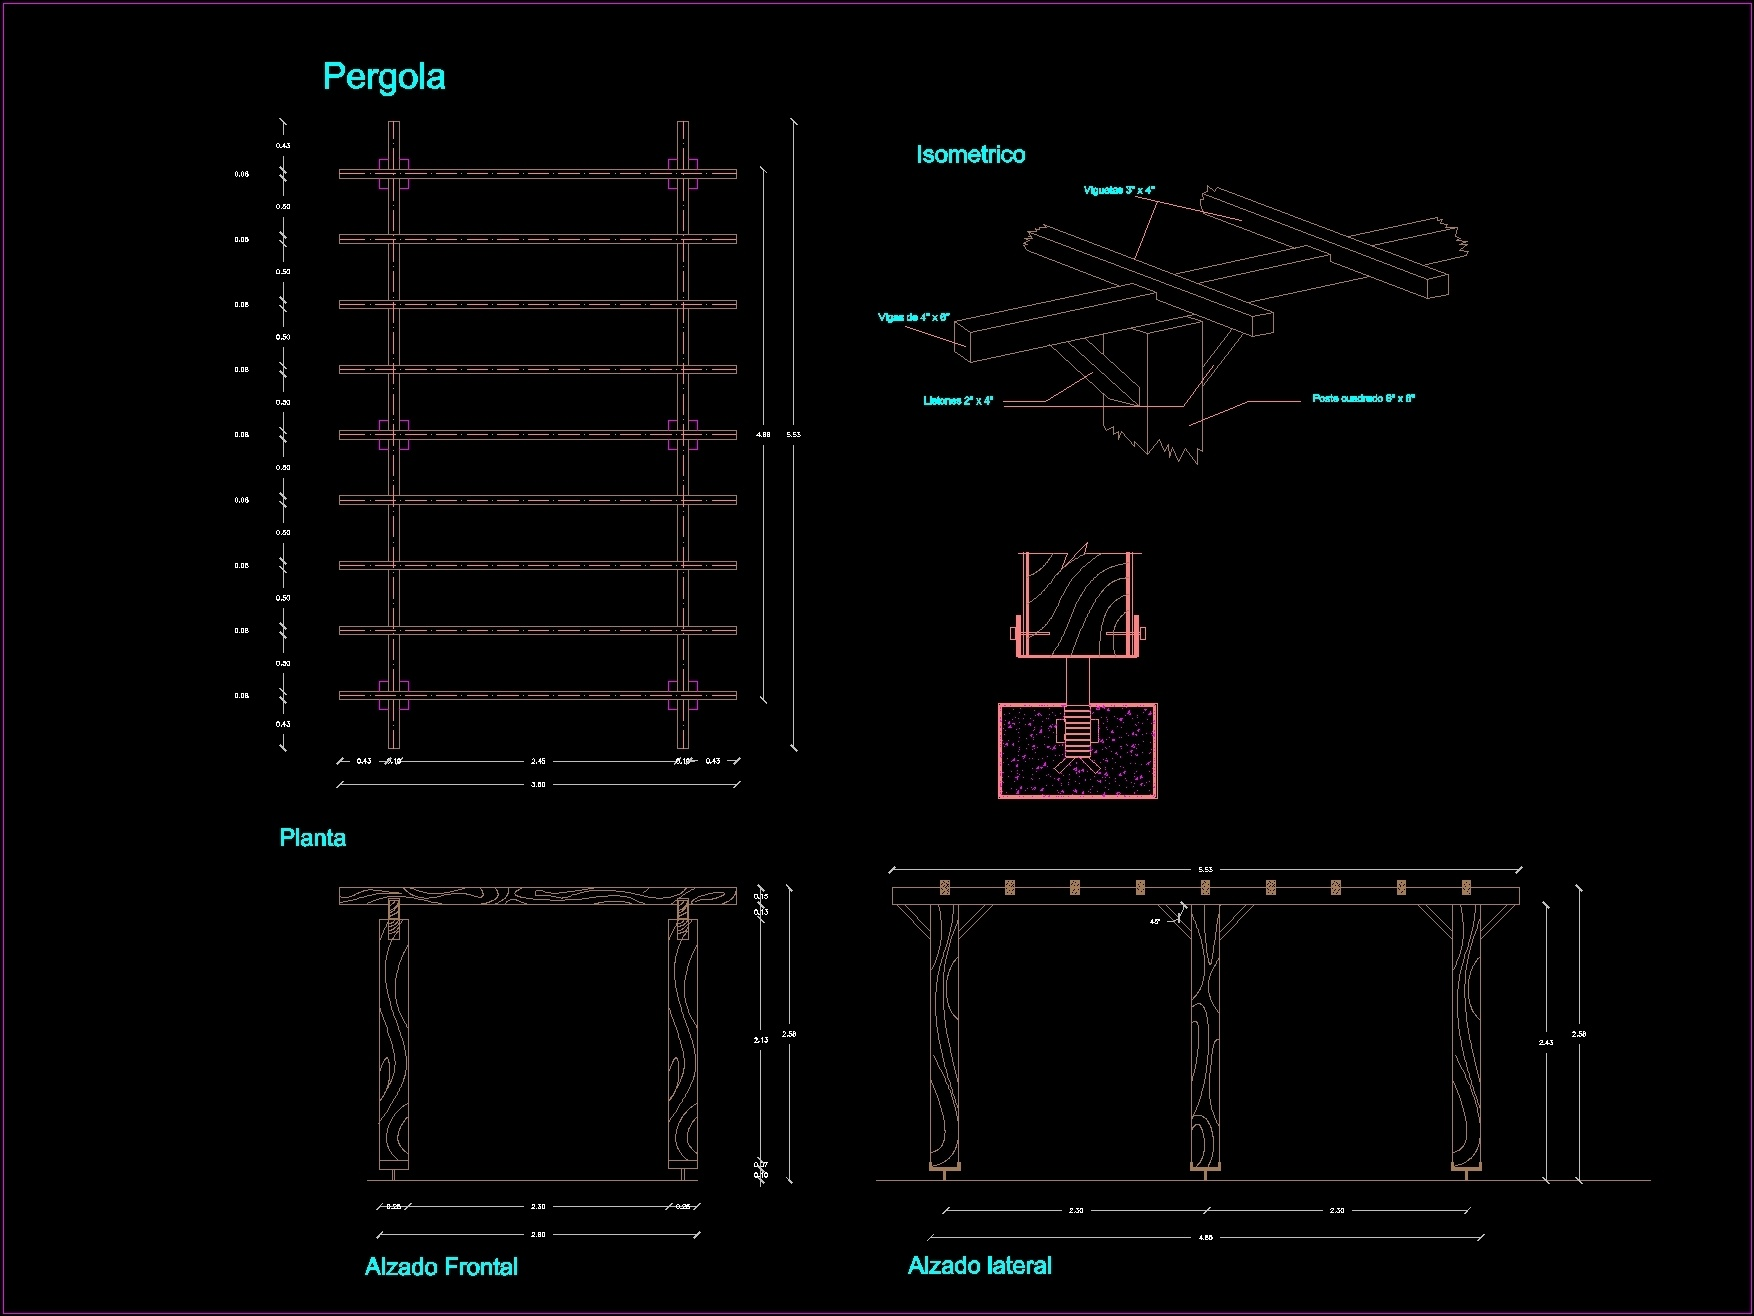 wooden_pergola_dwg_block_for_autocad_982